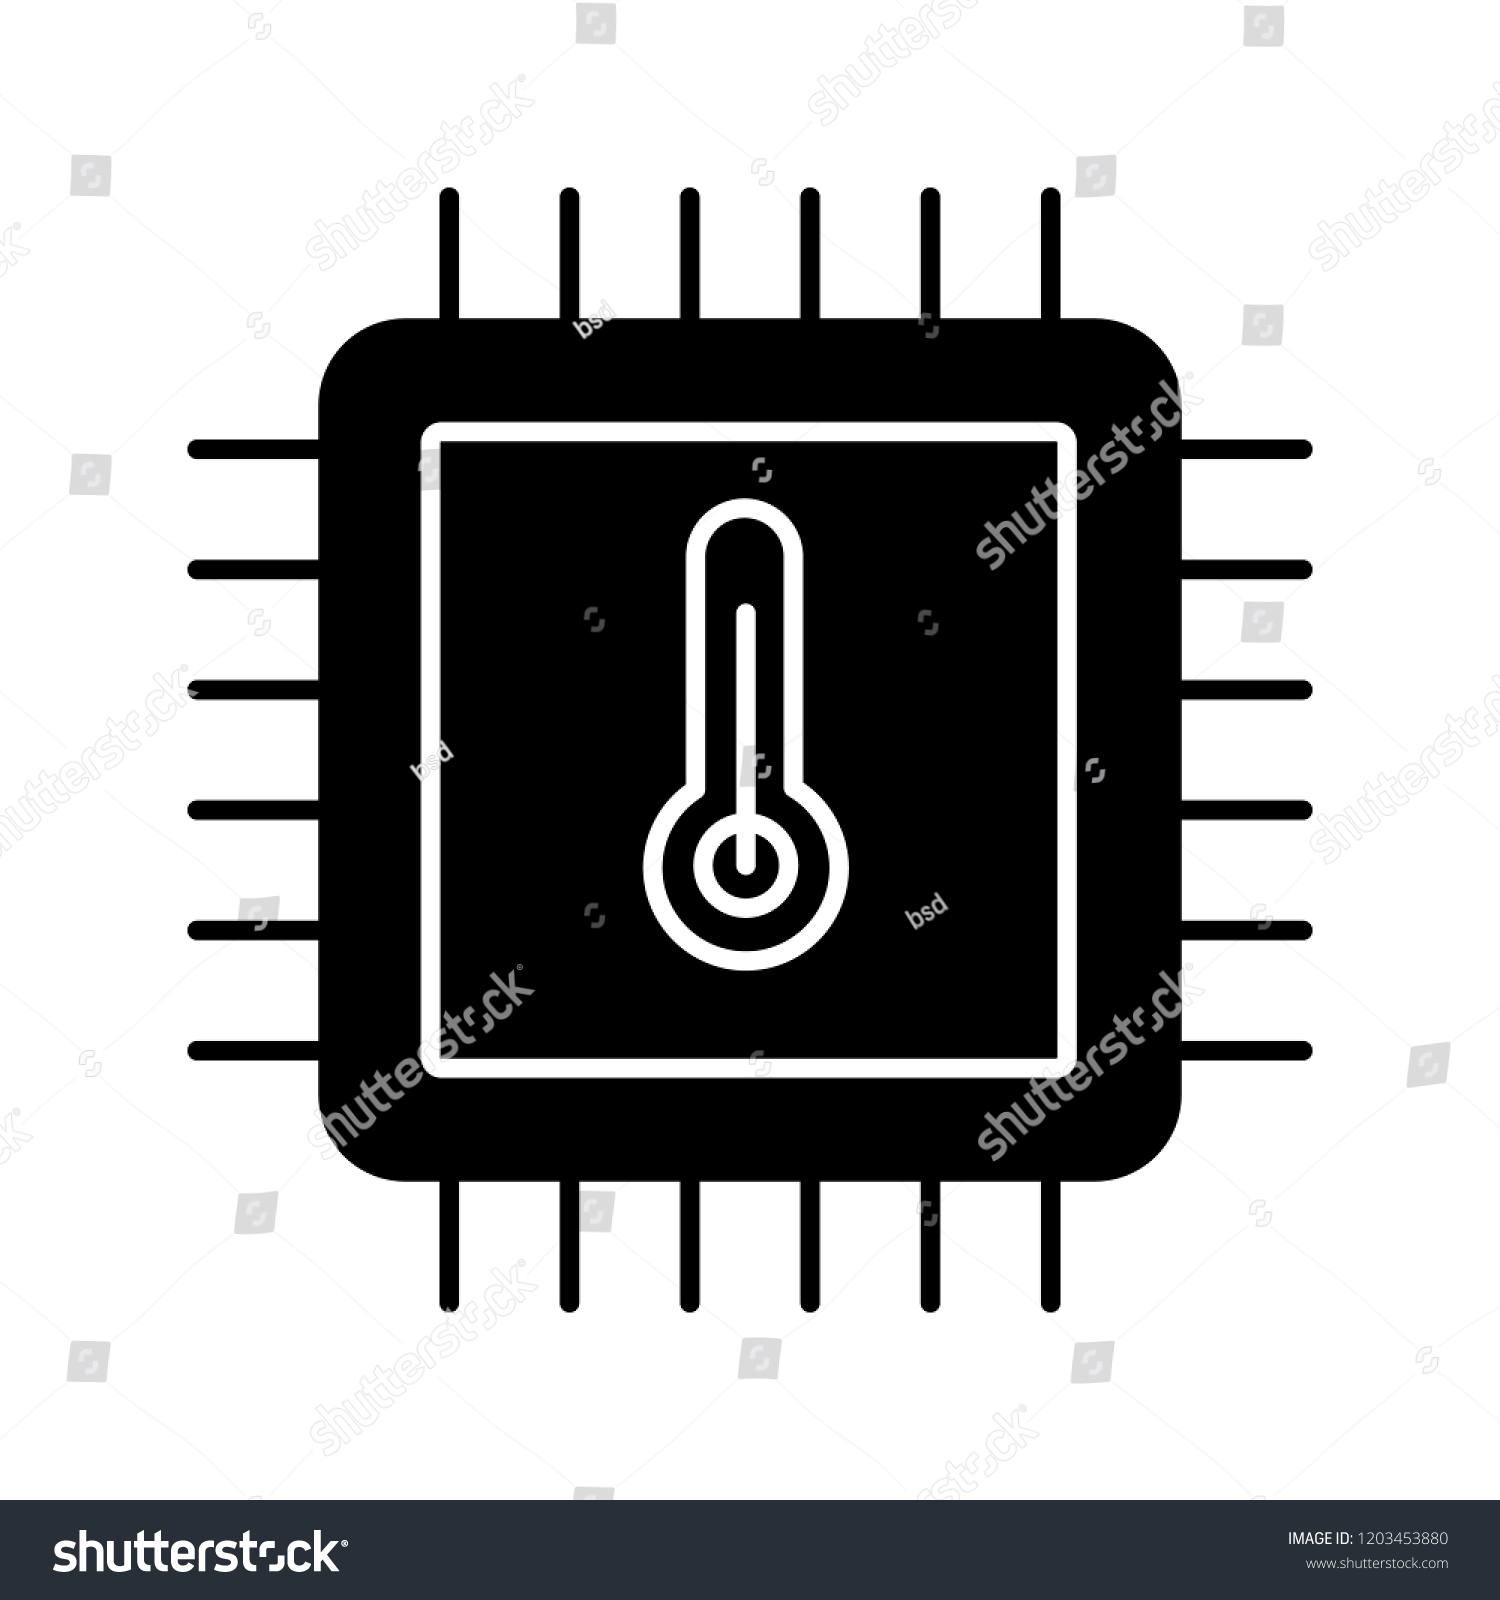 Processor Temperature Glyph Icon Core Temp Stock Vector Royalty Electronic Integrated Circuit Chip Free Image Cpu Overheating Microchip Chipset Heating